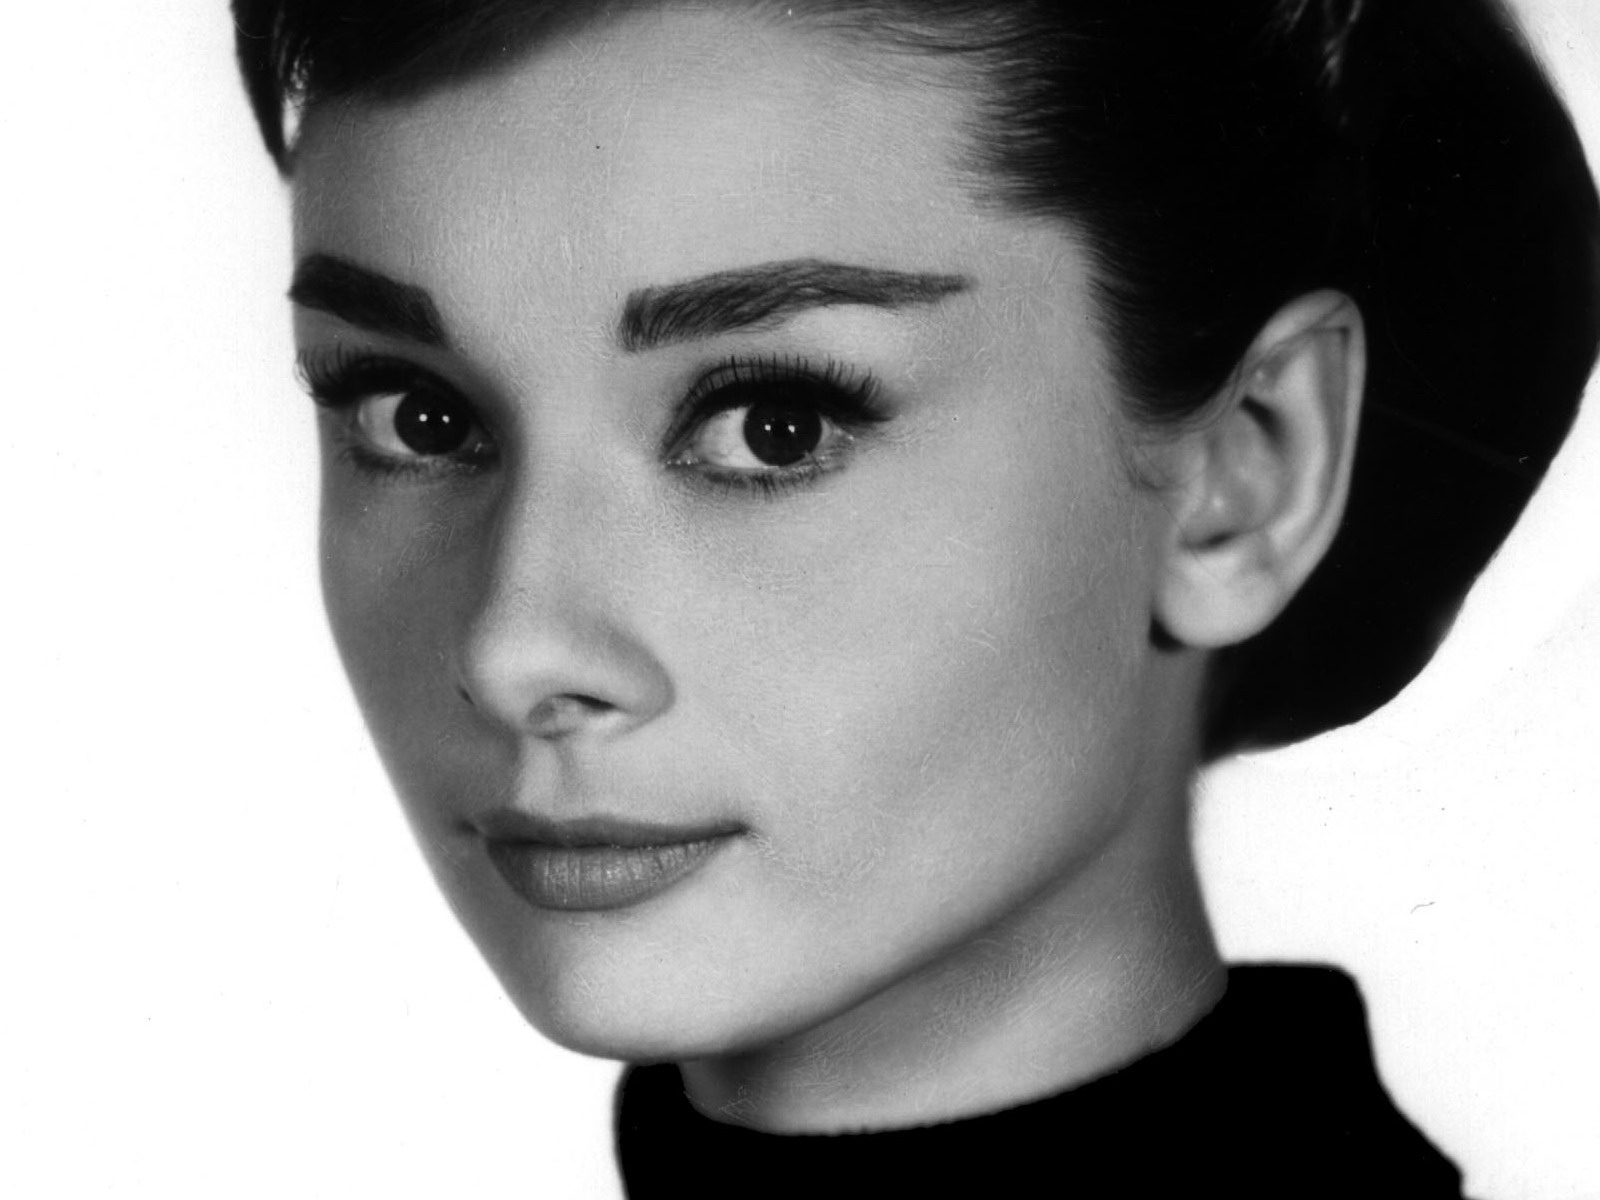 http://static.tumblr.com/378dd41e3f6e2f5fb43746bf42b69ab5/6qxz5a3/nuimltrkd/tumblr_static_audrey-hepburn-actors-photo-hd-desktop.jpg